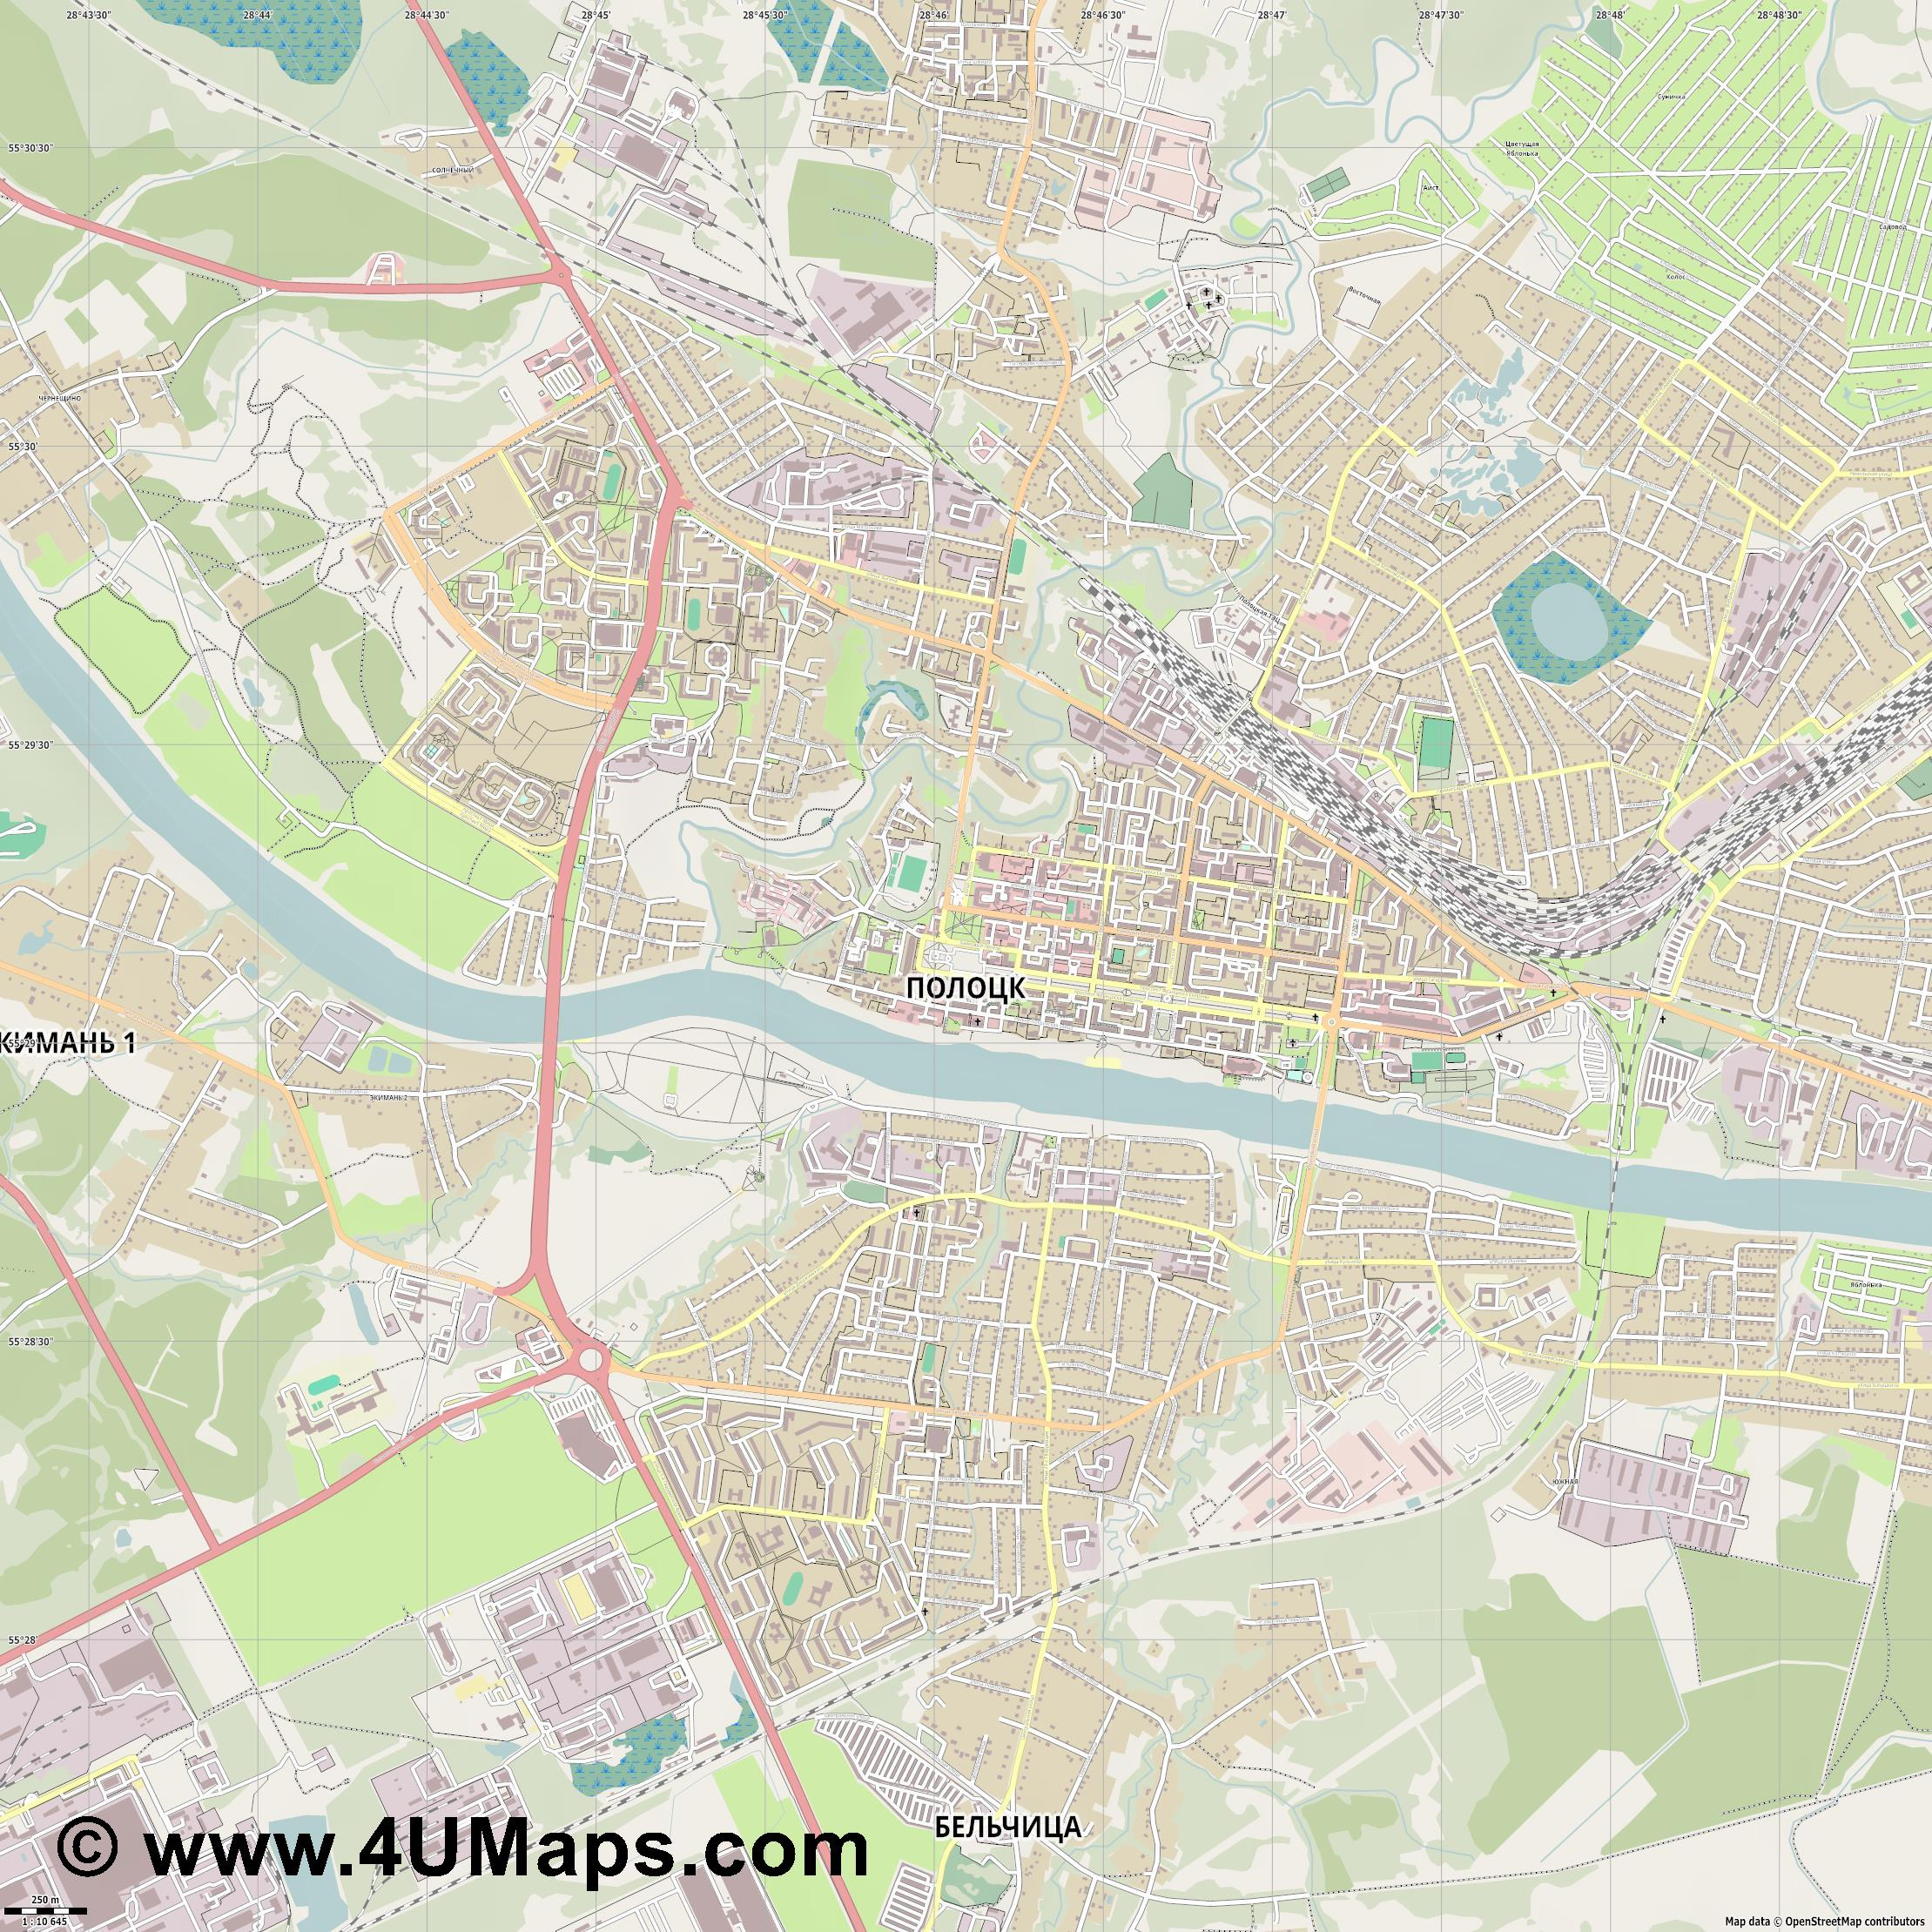 Полоцк Polotsk Polazk  jpg ultra high detail preview vector city map